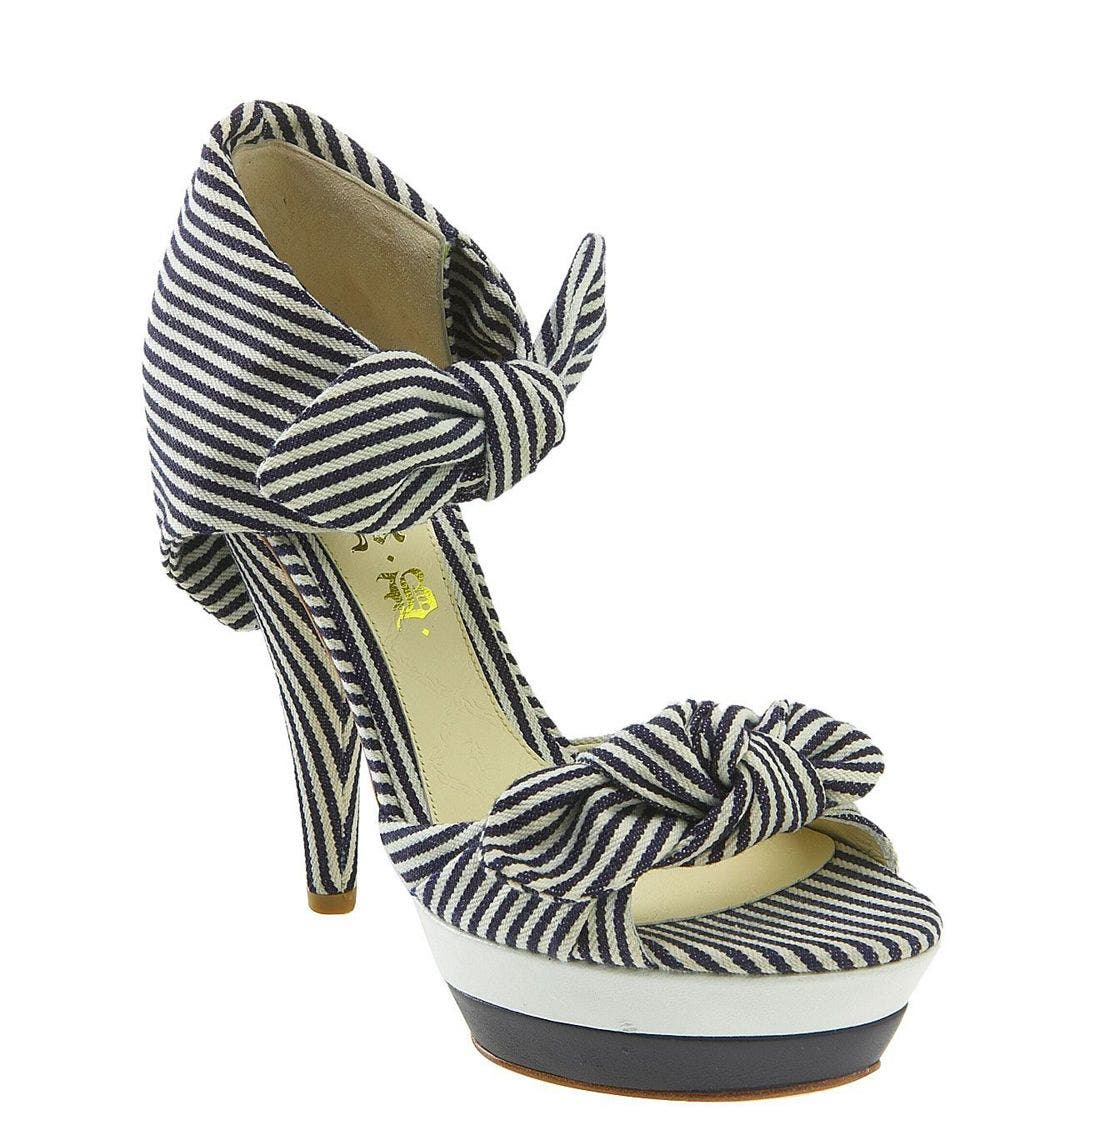 Main Image - L.A.M.B. 'Dominic' Striped Sandal